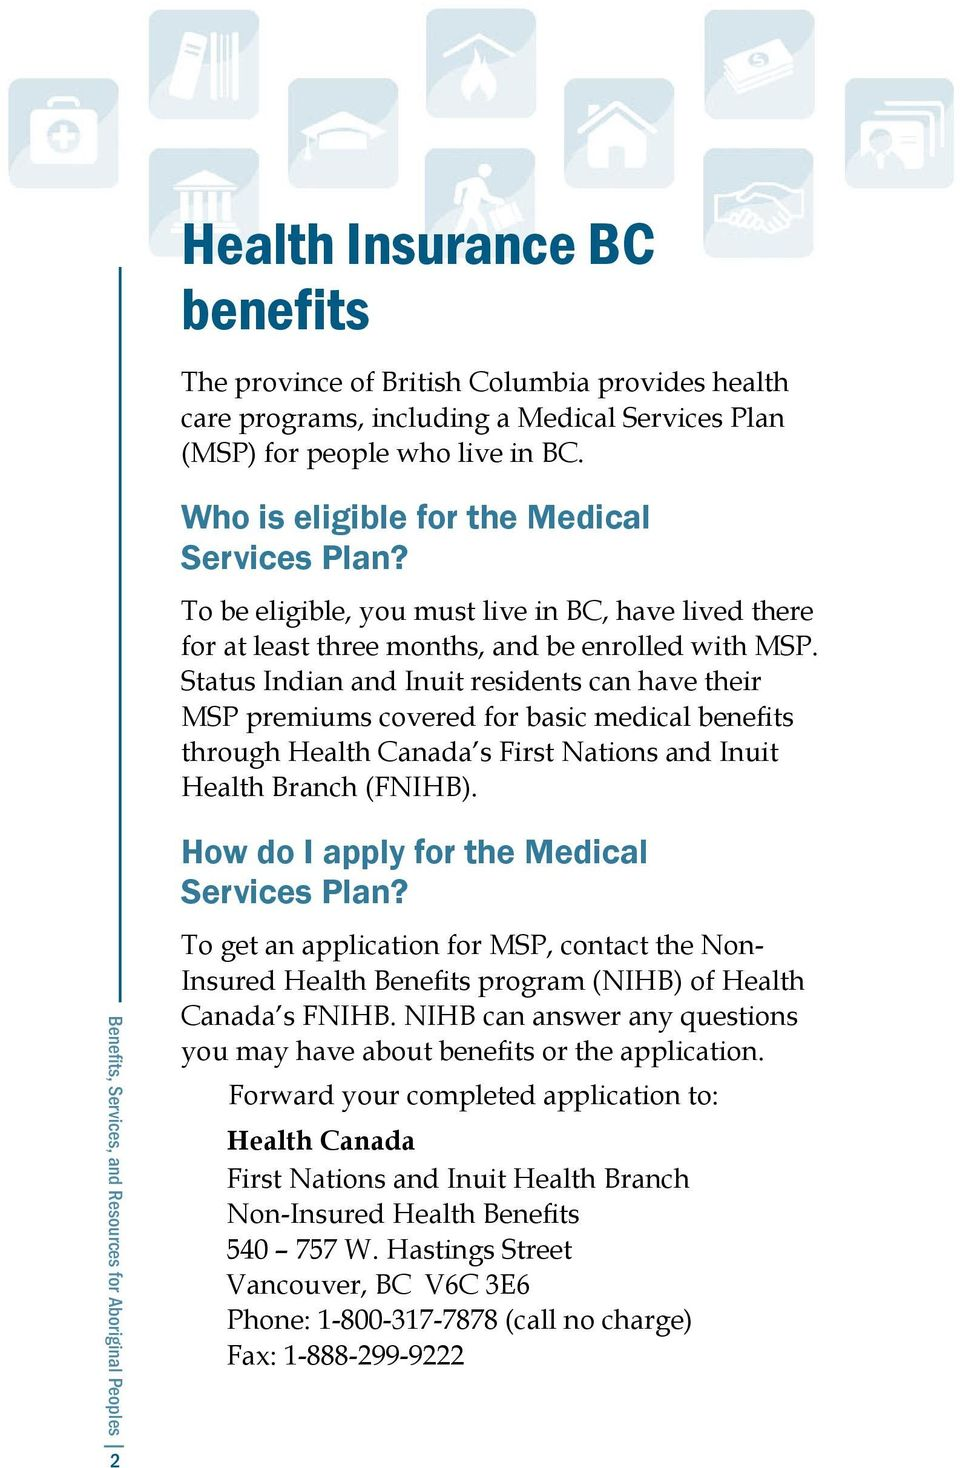 Status Indian and Inuit residents can have their MSP premiums covered for basic medical benefits through Health Canada s First Nations and Inuit Health Branch (FNIHB).